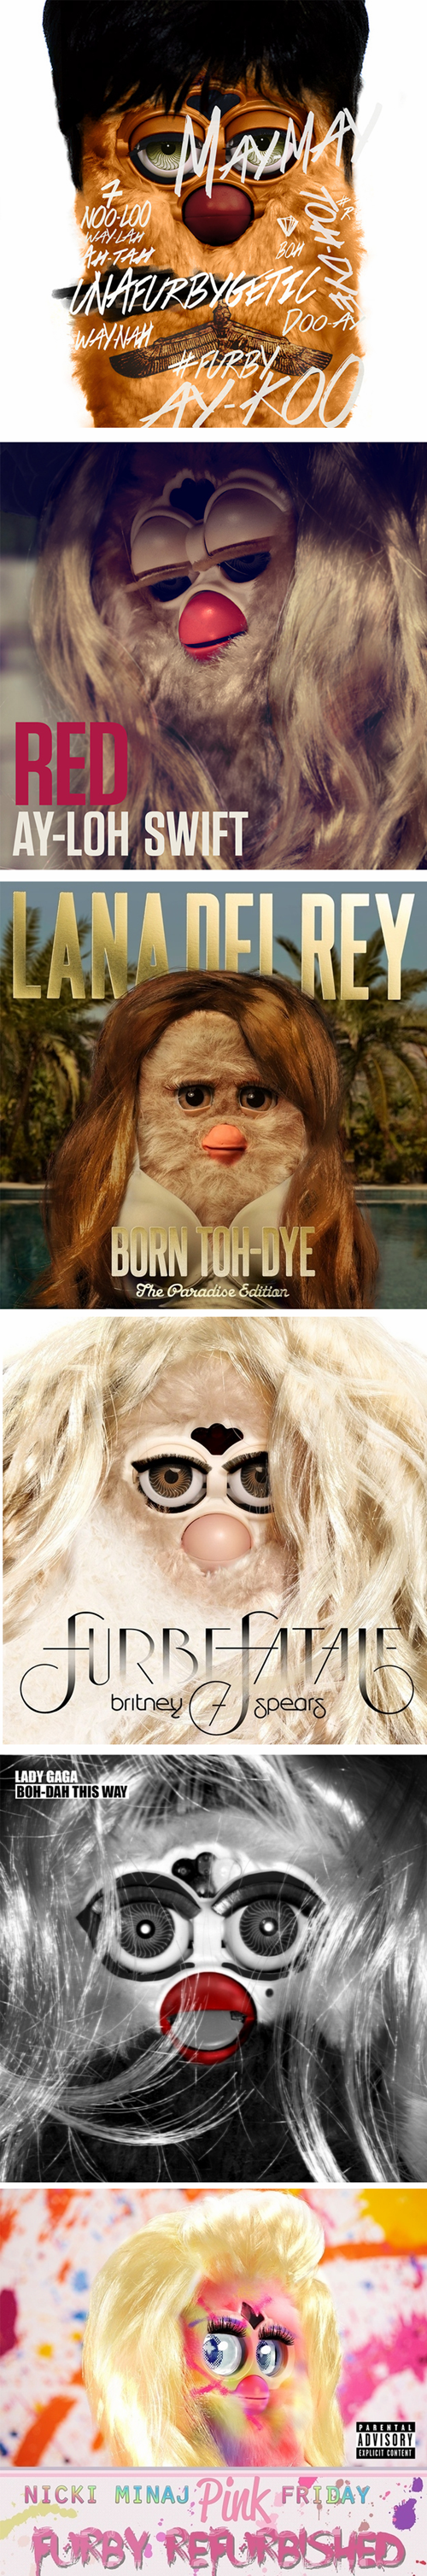 Furbies Gone Diva